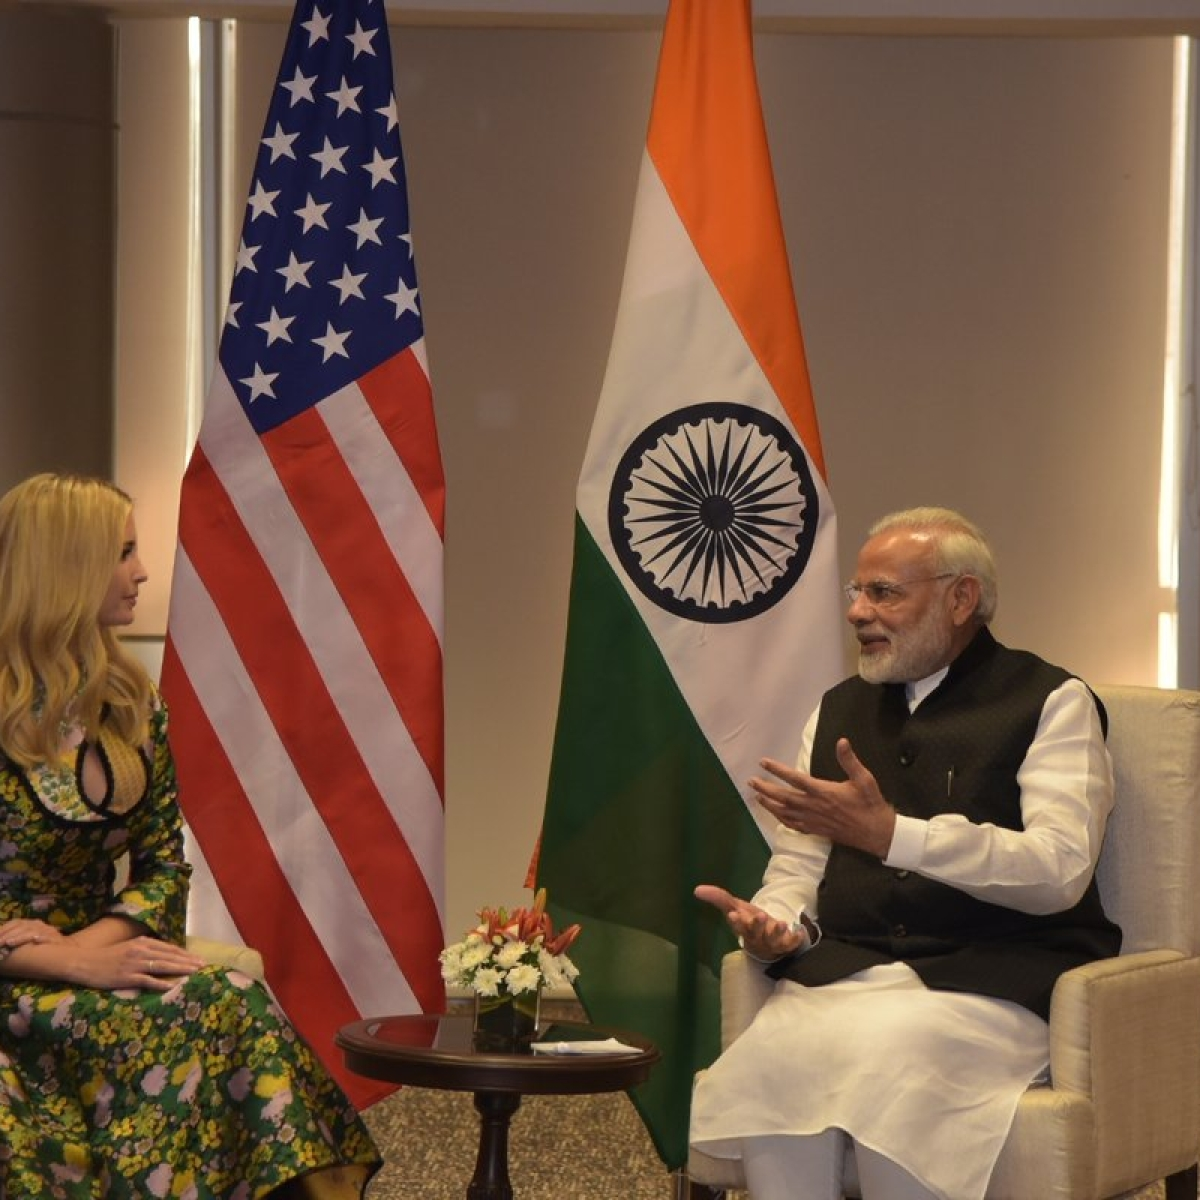 Ivanka thanks PM Modi for Yoga Nidra tweet, says it is wonderful